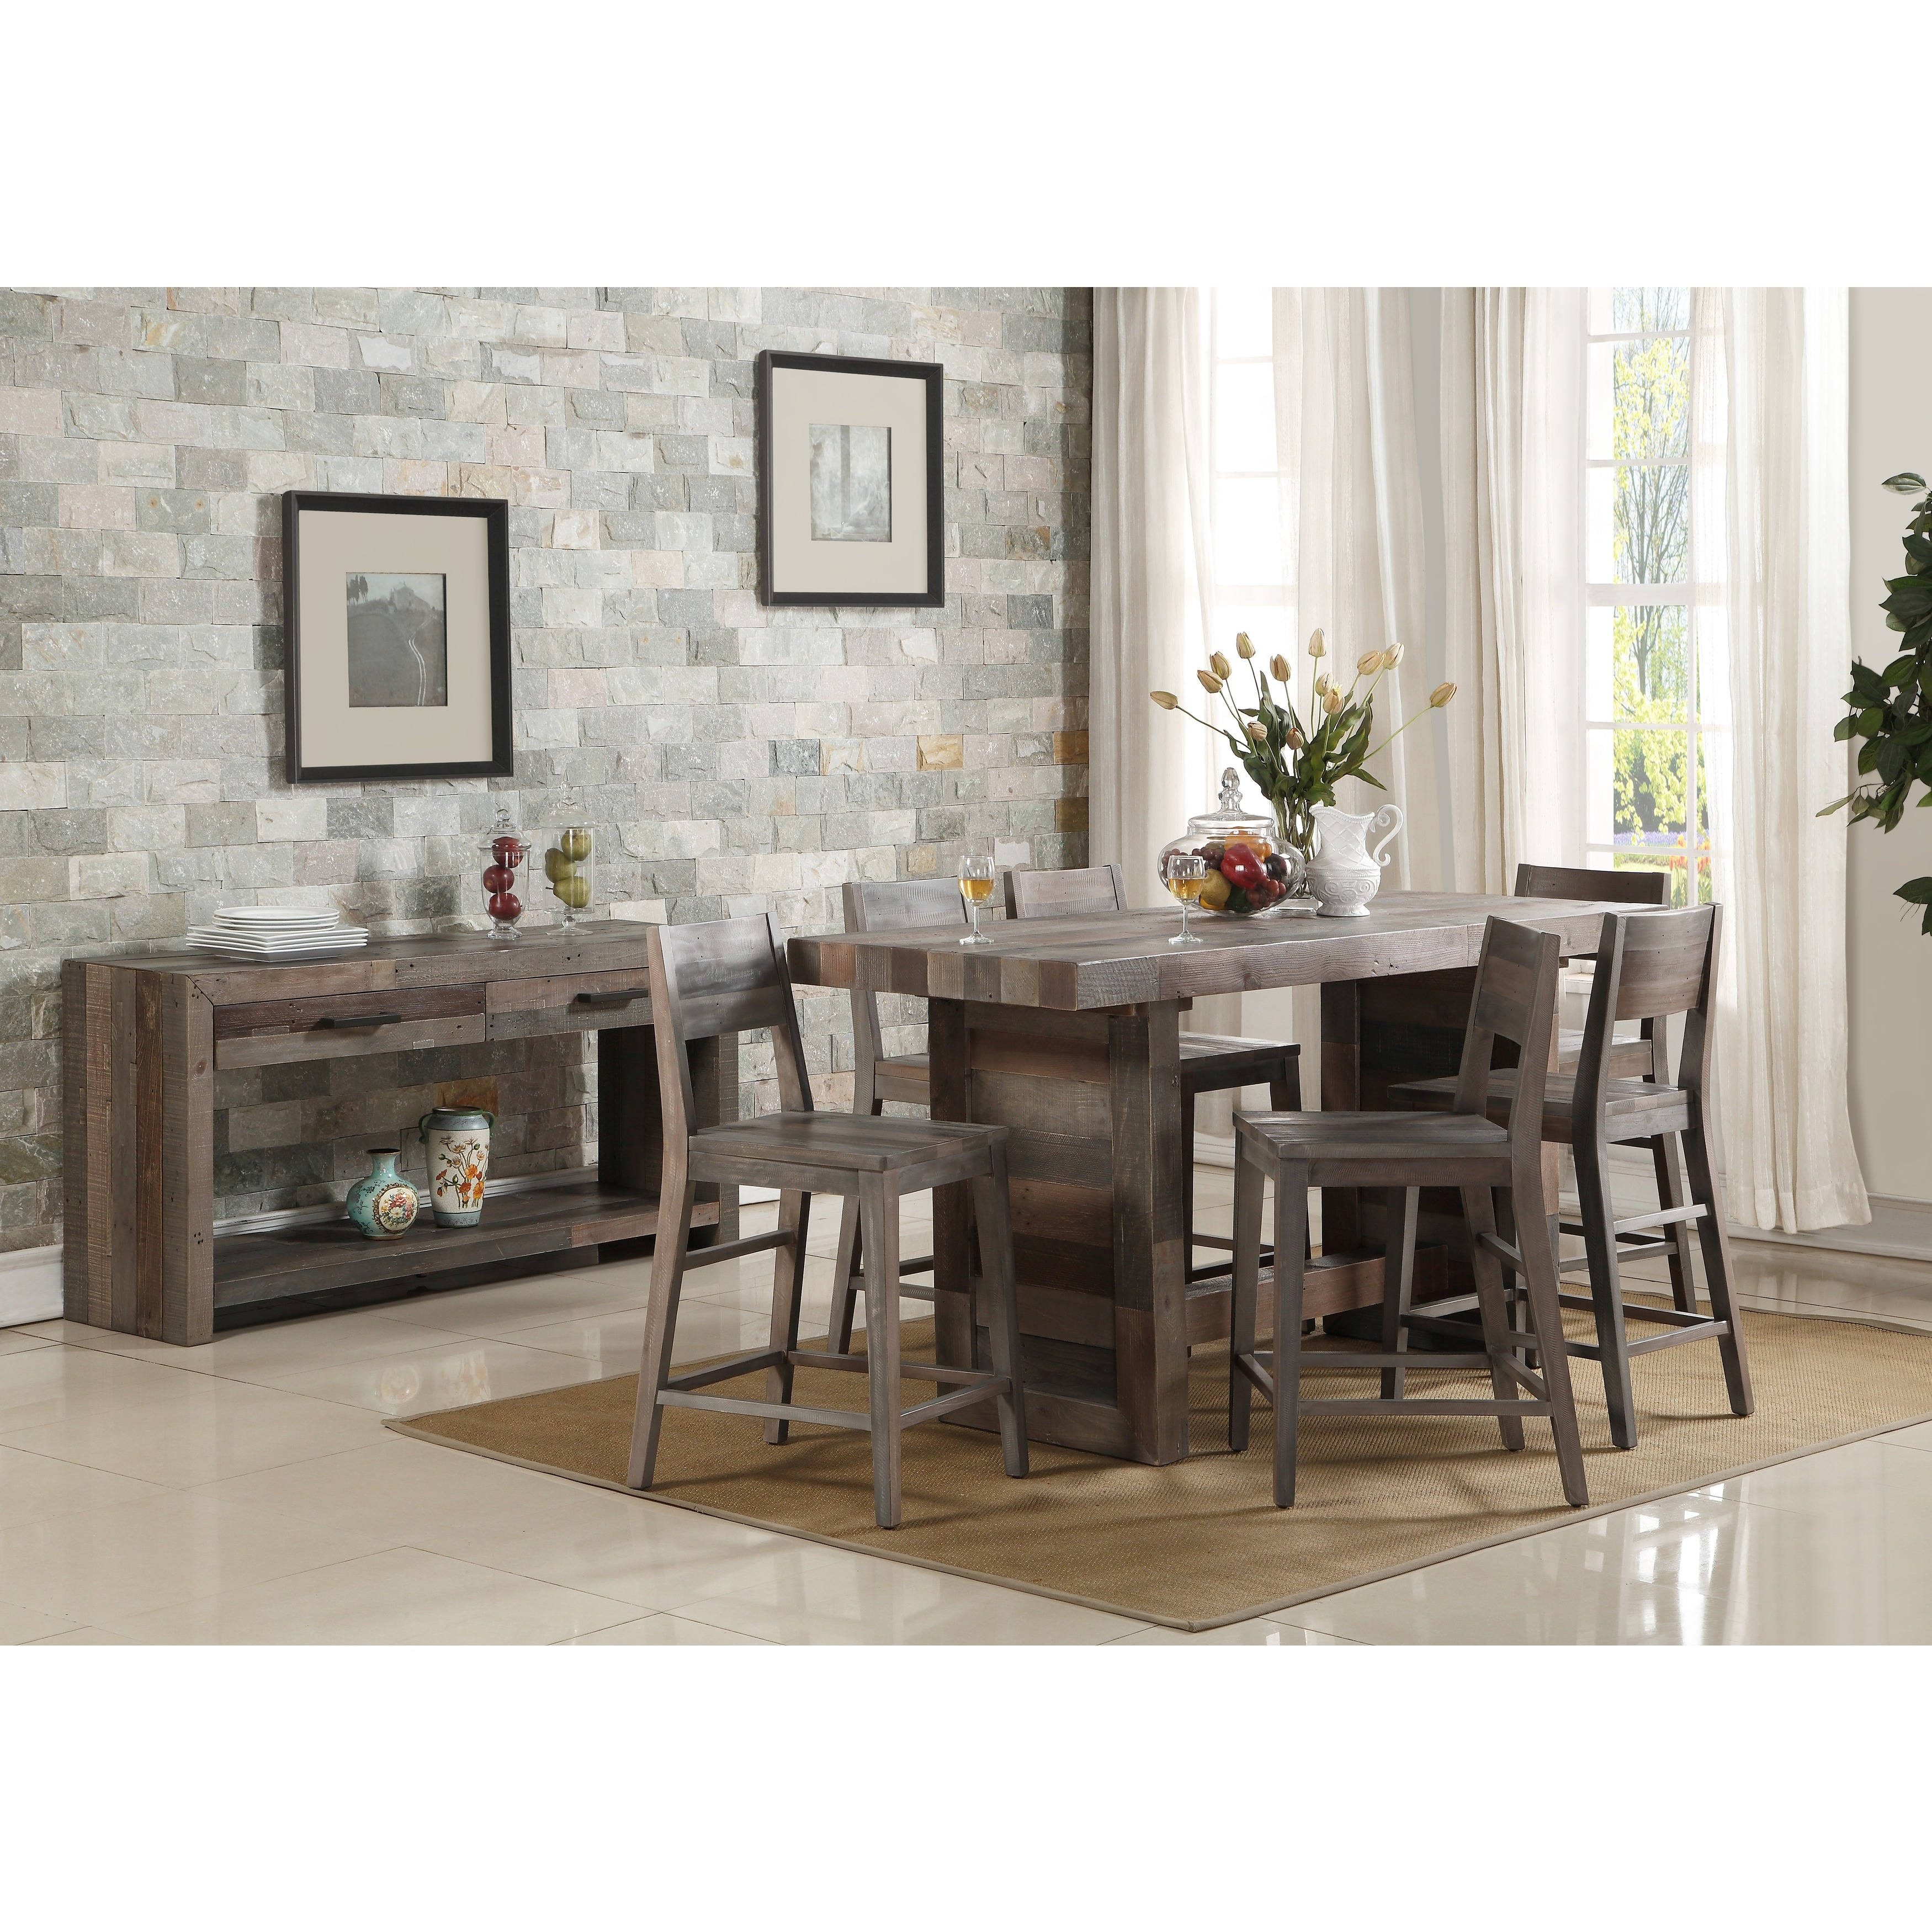 Oscar reclaimed wood 77 inch gathering table by kosas home charcoal